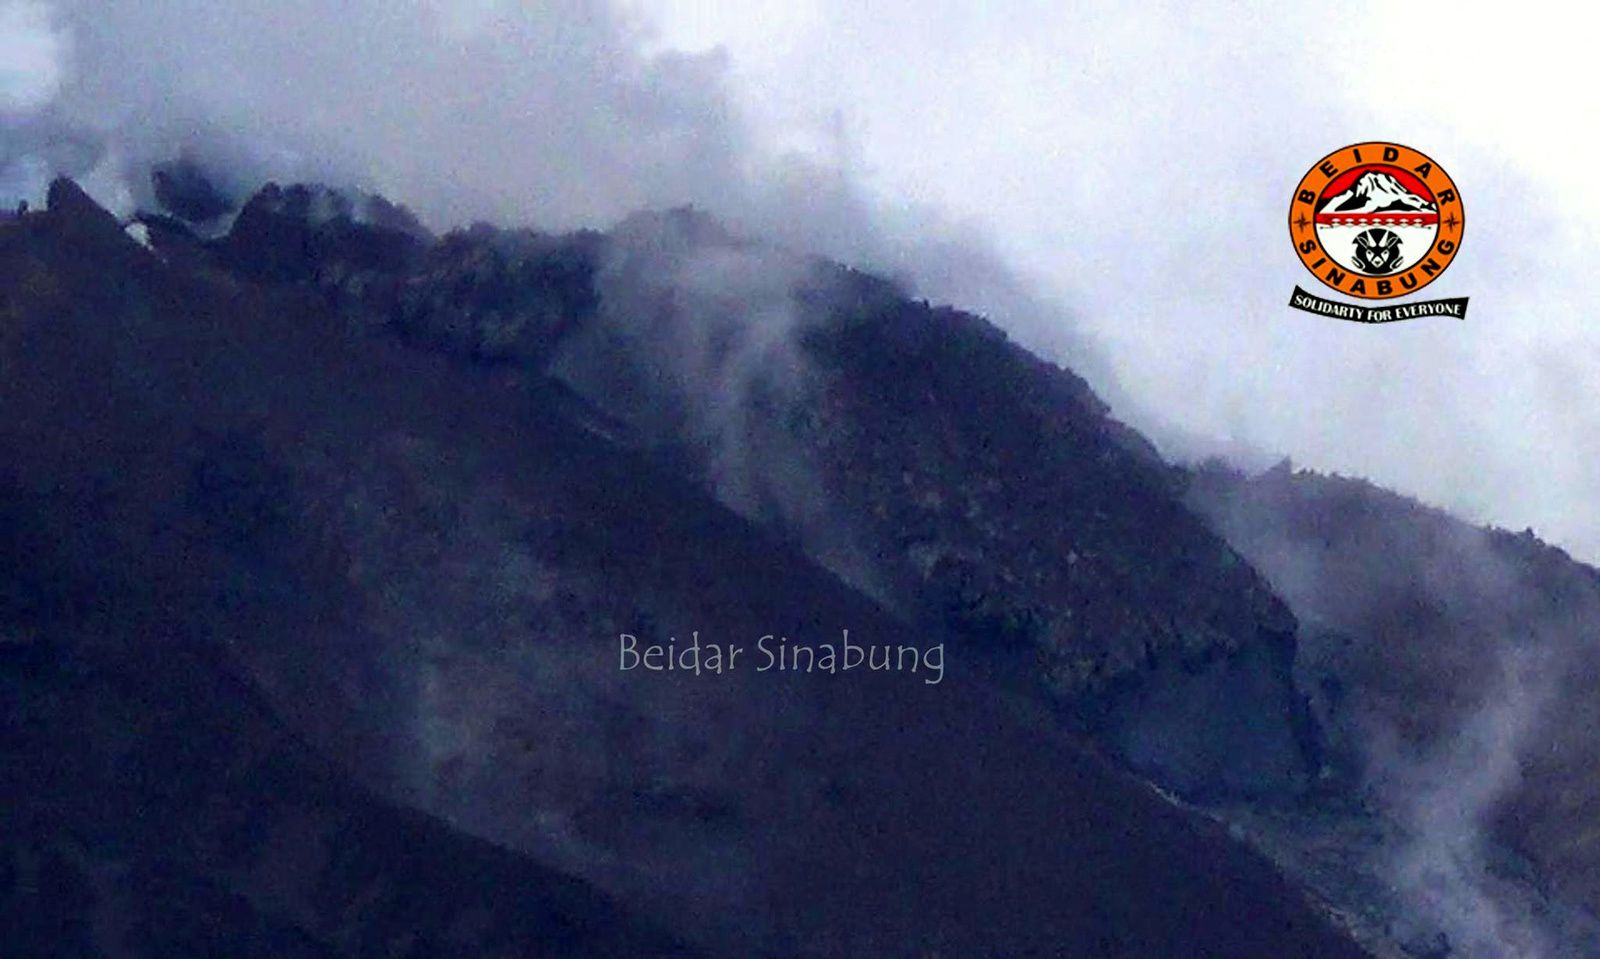 Sinabung - the lava dome involved in collapses and pyroclastic flows - photo Beidar Sinabung